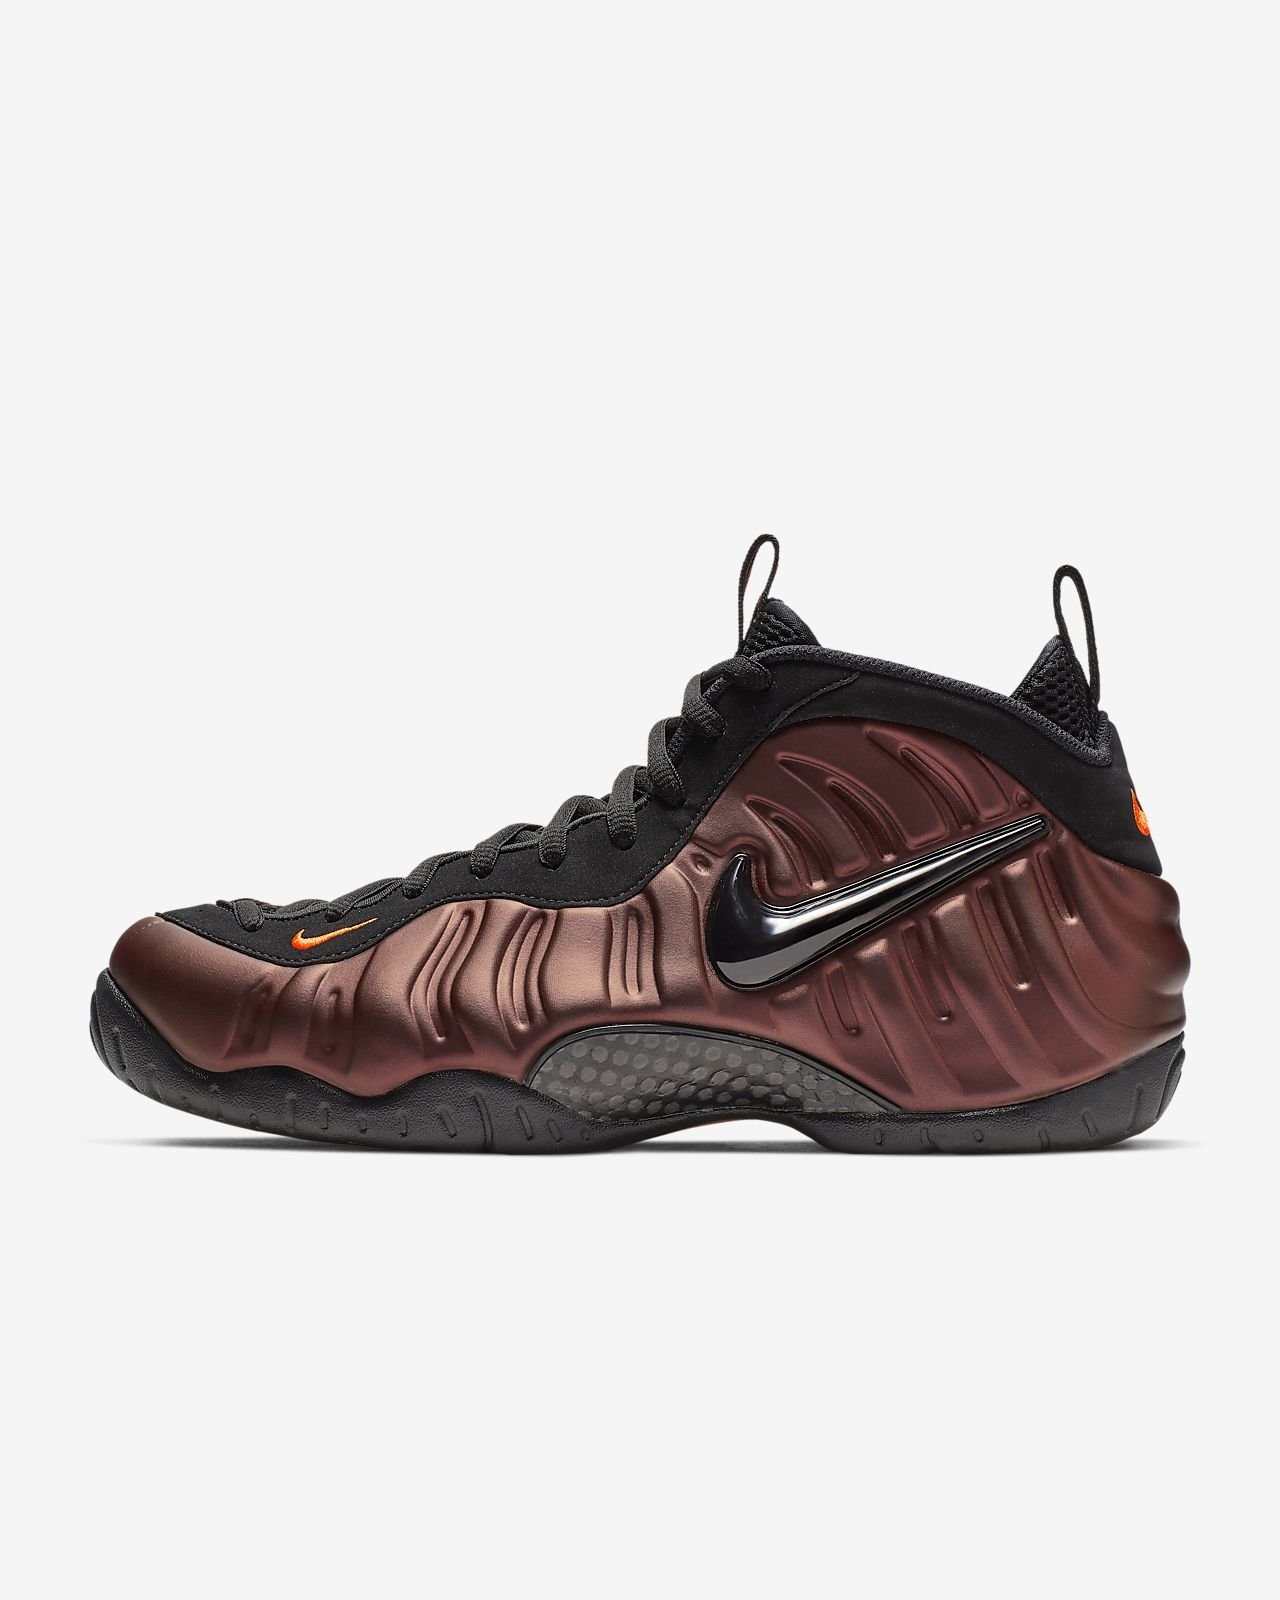 save off 29926 d99a0 ... Nike Air Foamposite Pro Men s Shoe